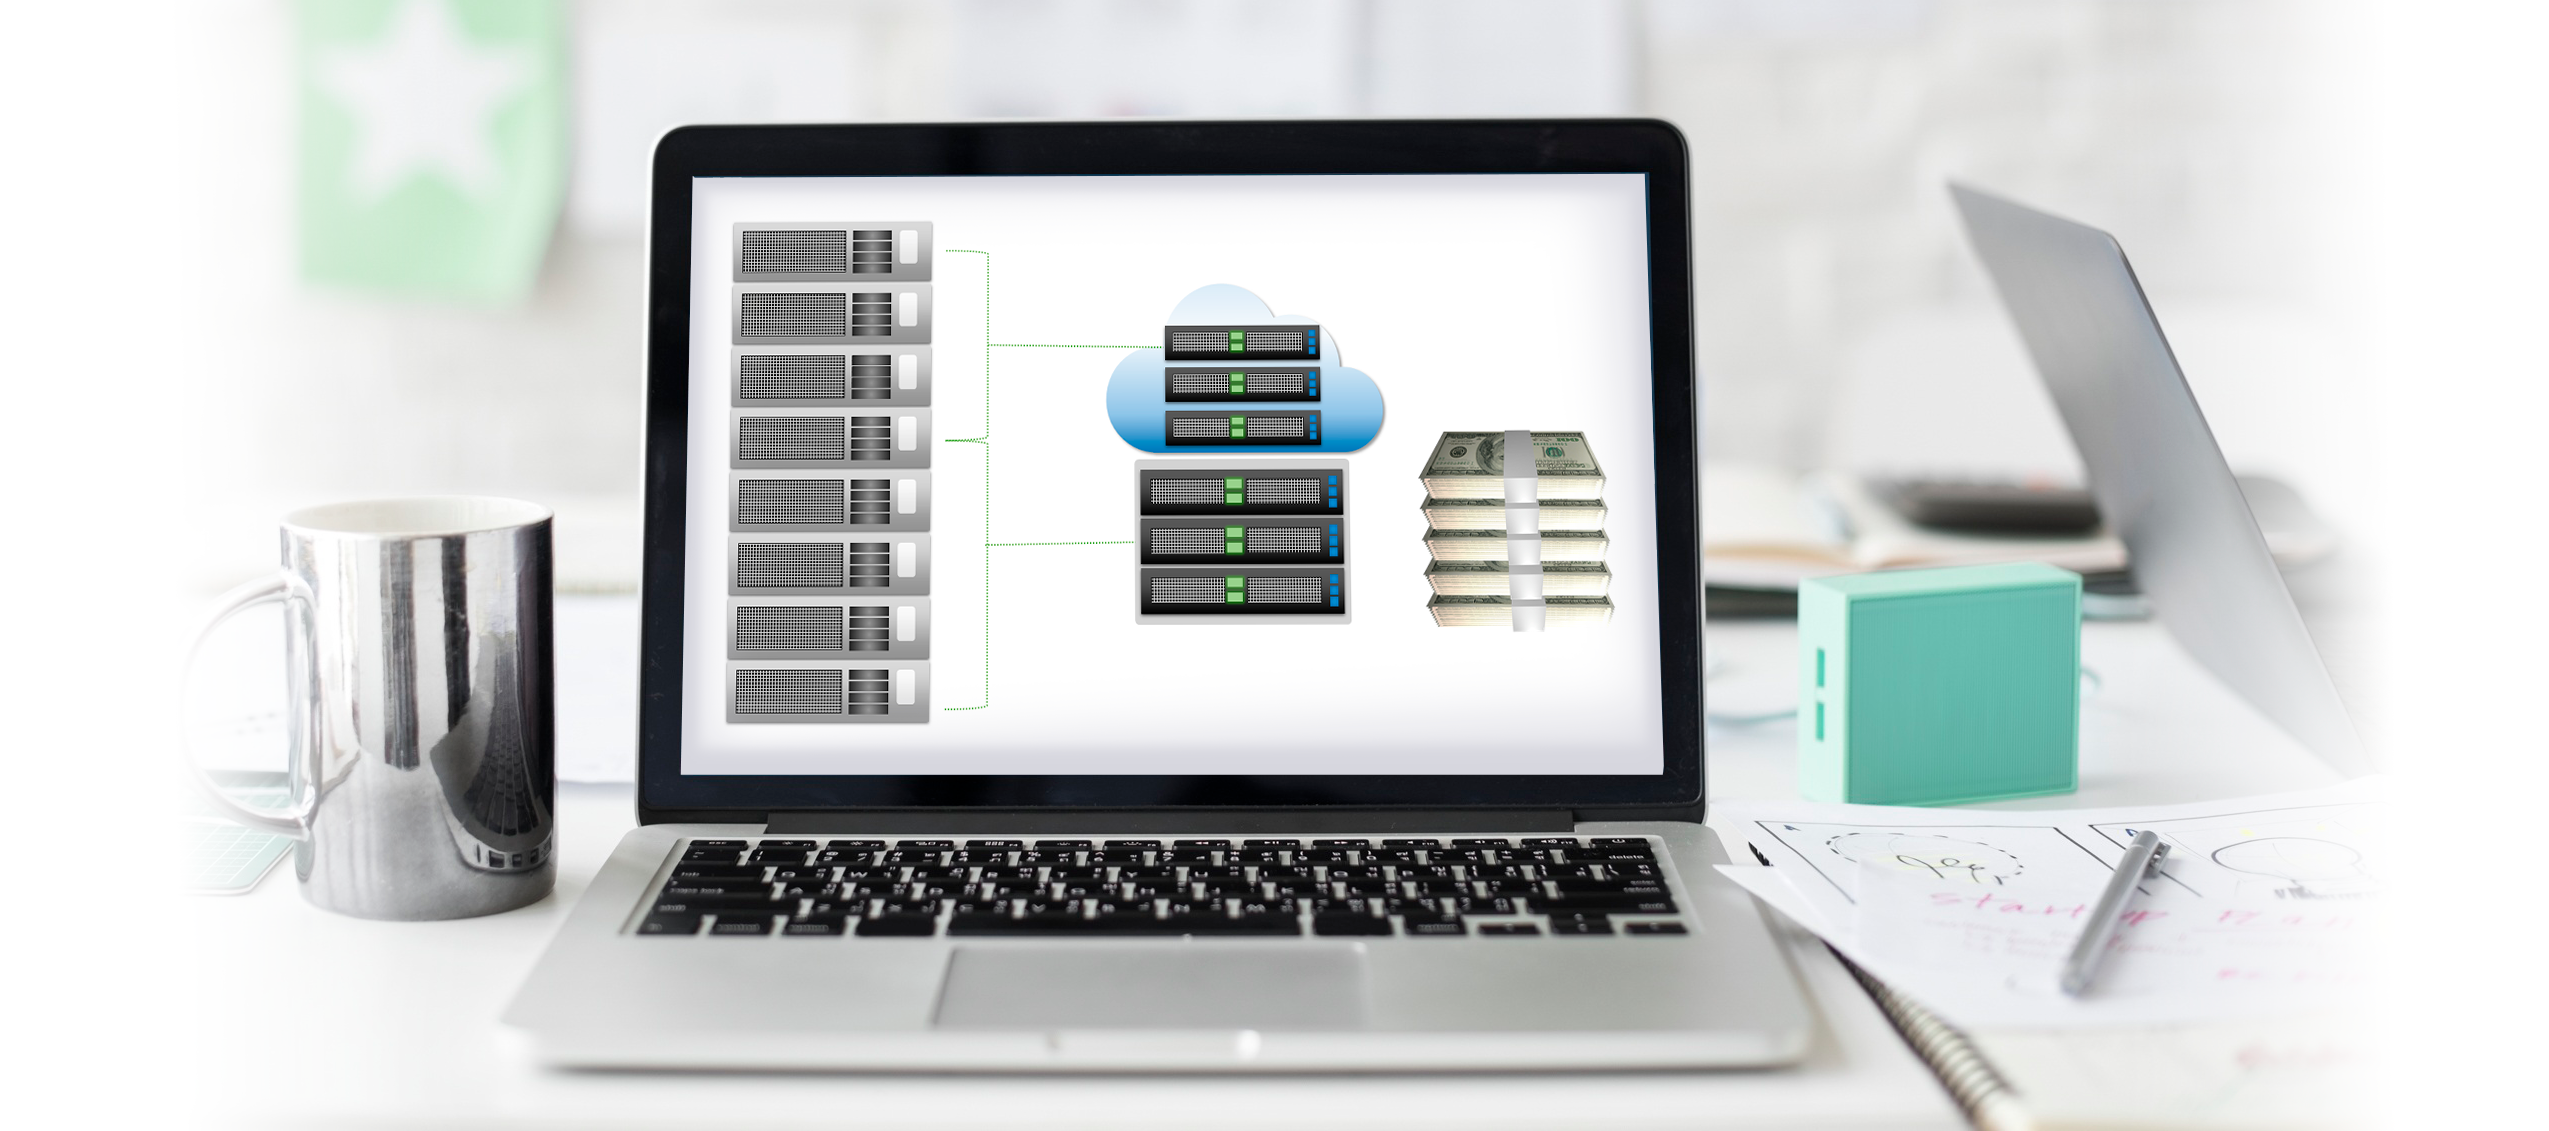 Why should you consolidate a scattered SQL Server environment